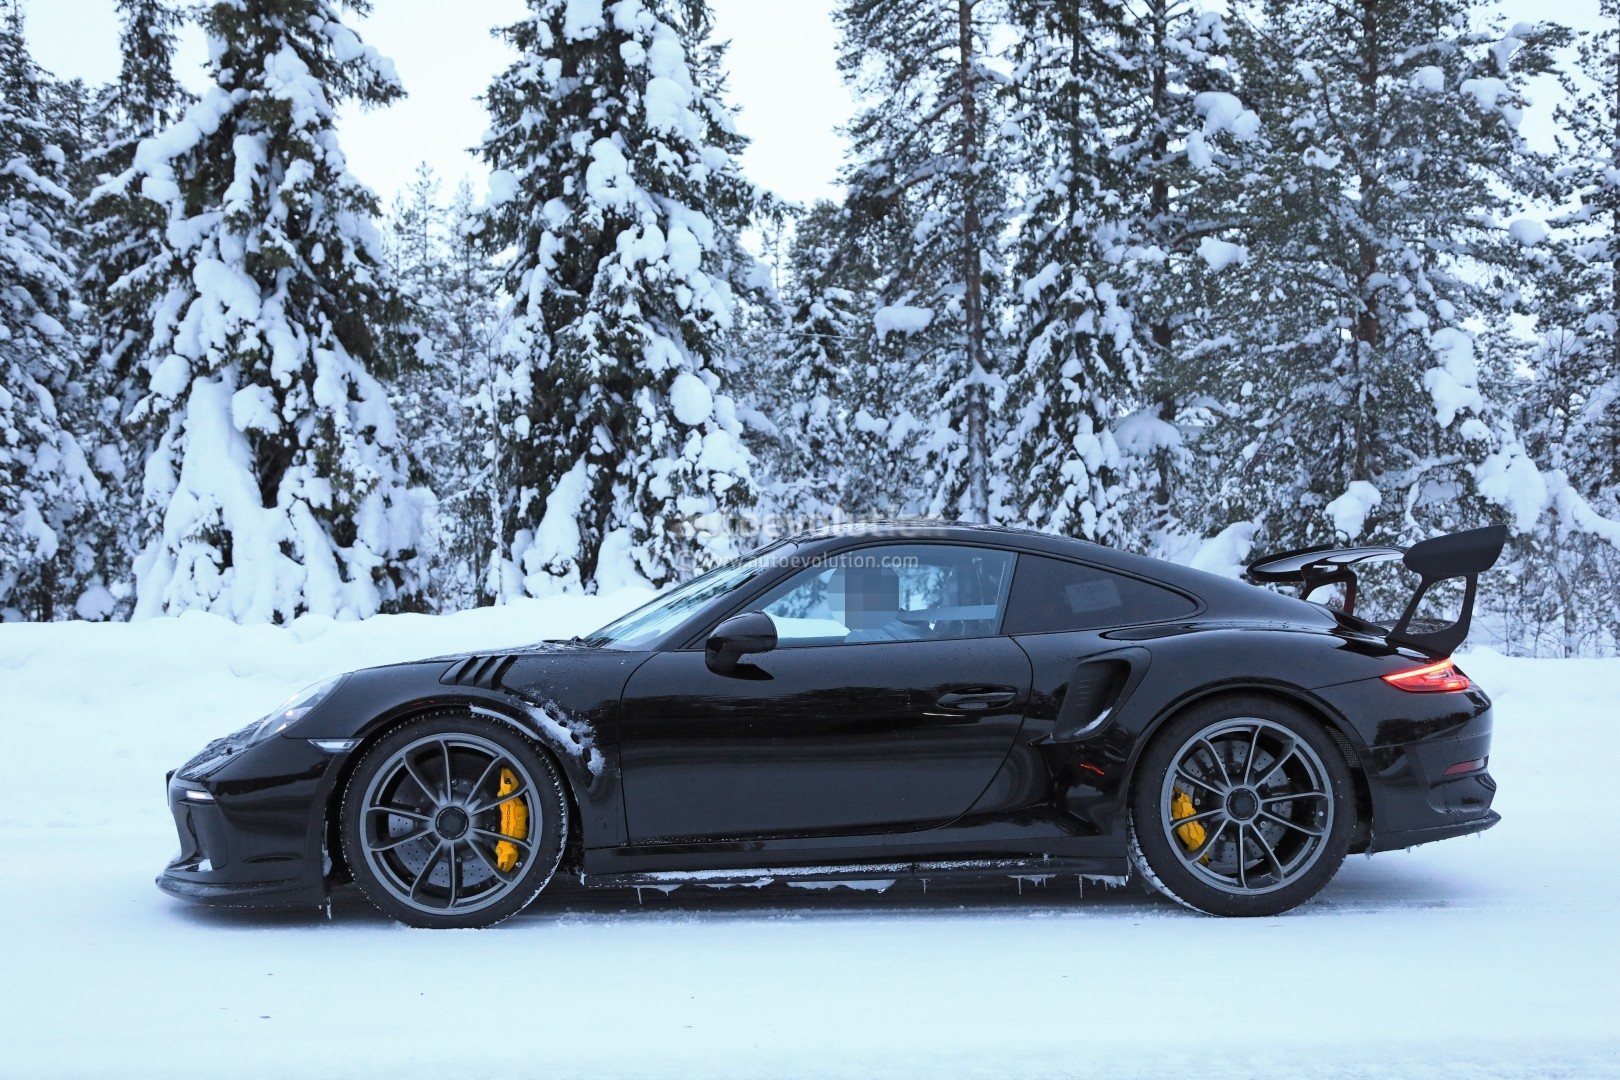 2019 Porsche 911 GT3 RS Fully Revealed by Naked Prototype